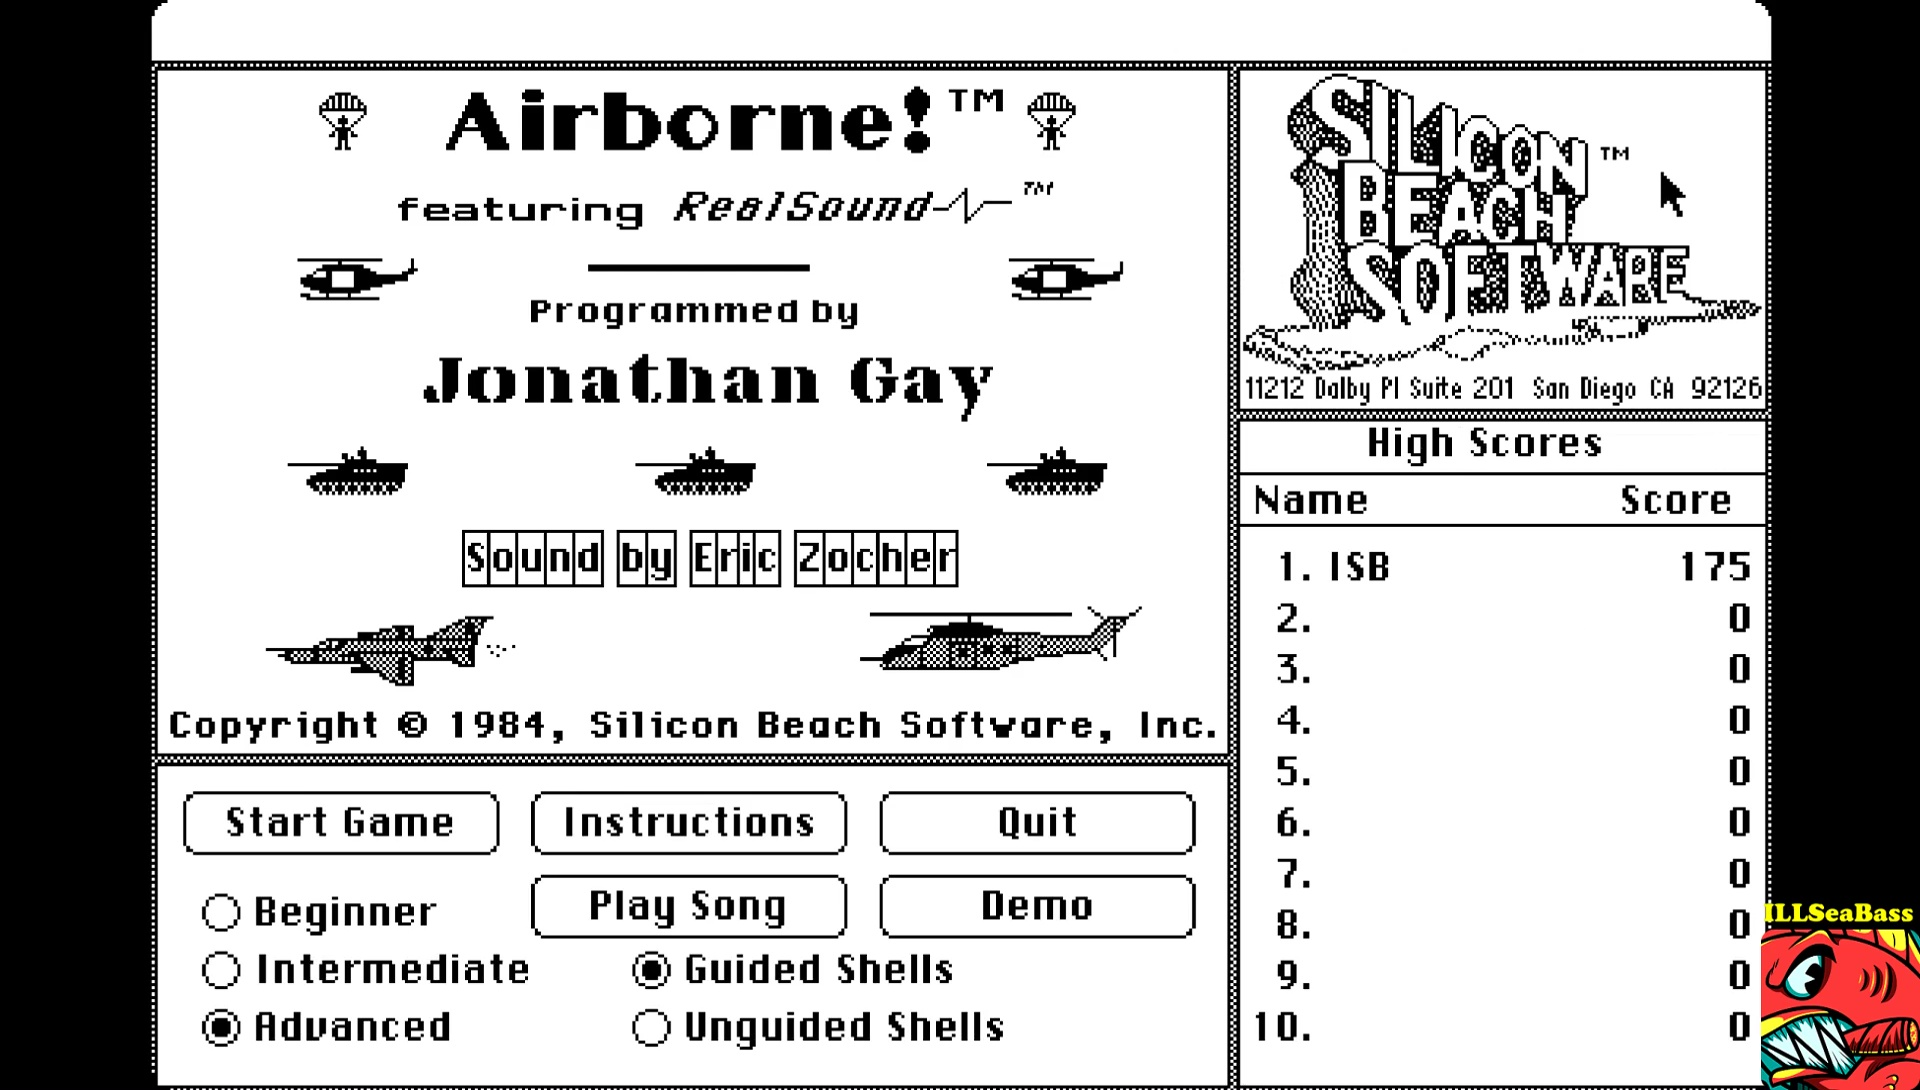 ILLSeaBass: Airborne! [Advanced] (Mac OS Emulated) 175 points on 2017-05-20 22:23:13